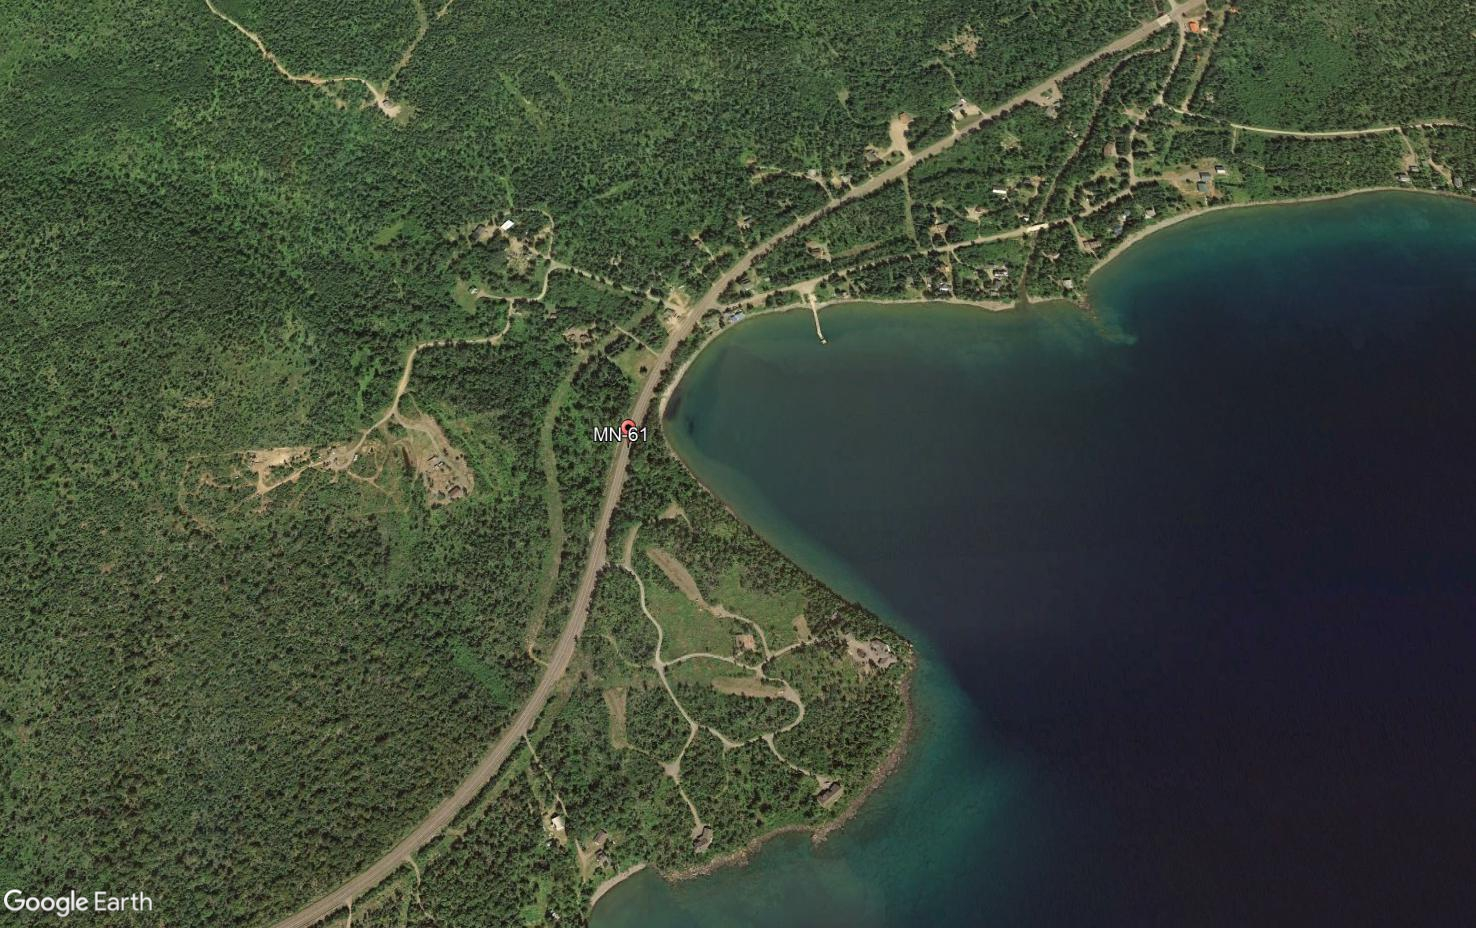 Aerial view of a forested area with some small roads and dispersed buildings, with Lake Superior in the right side of the photo.